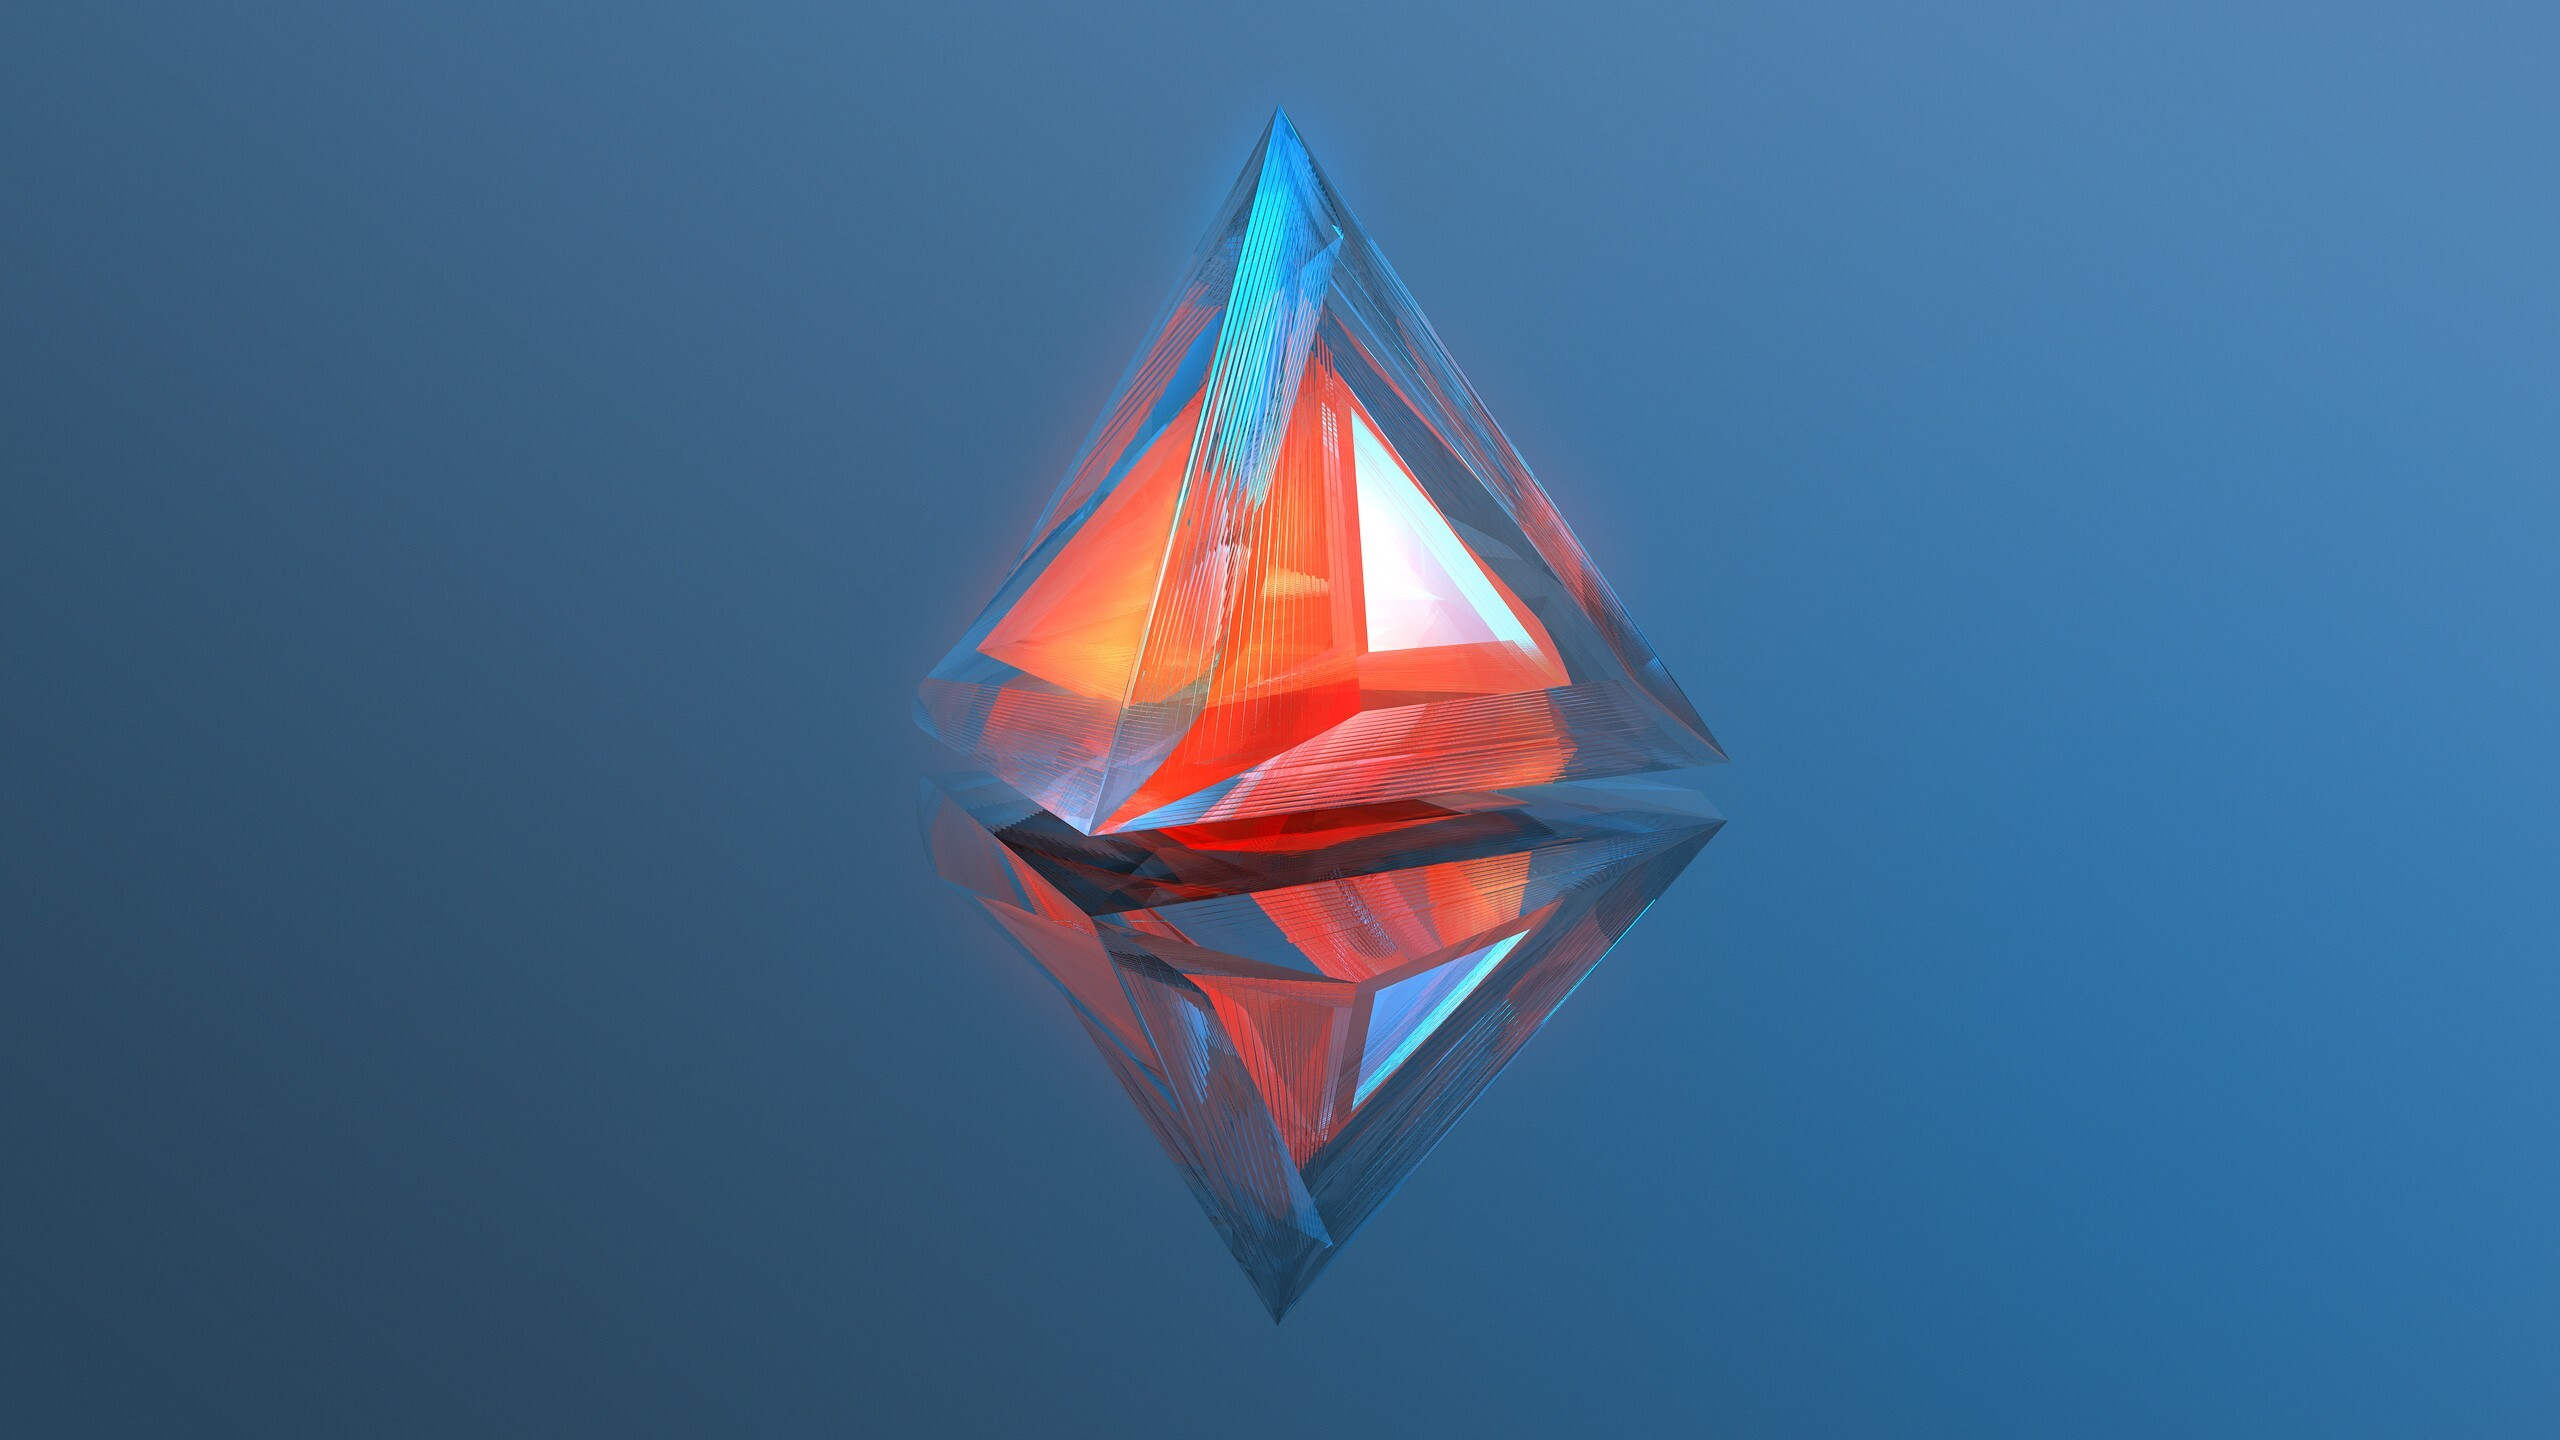 triangle-geometry-3d-digital-art-s3.jpg